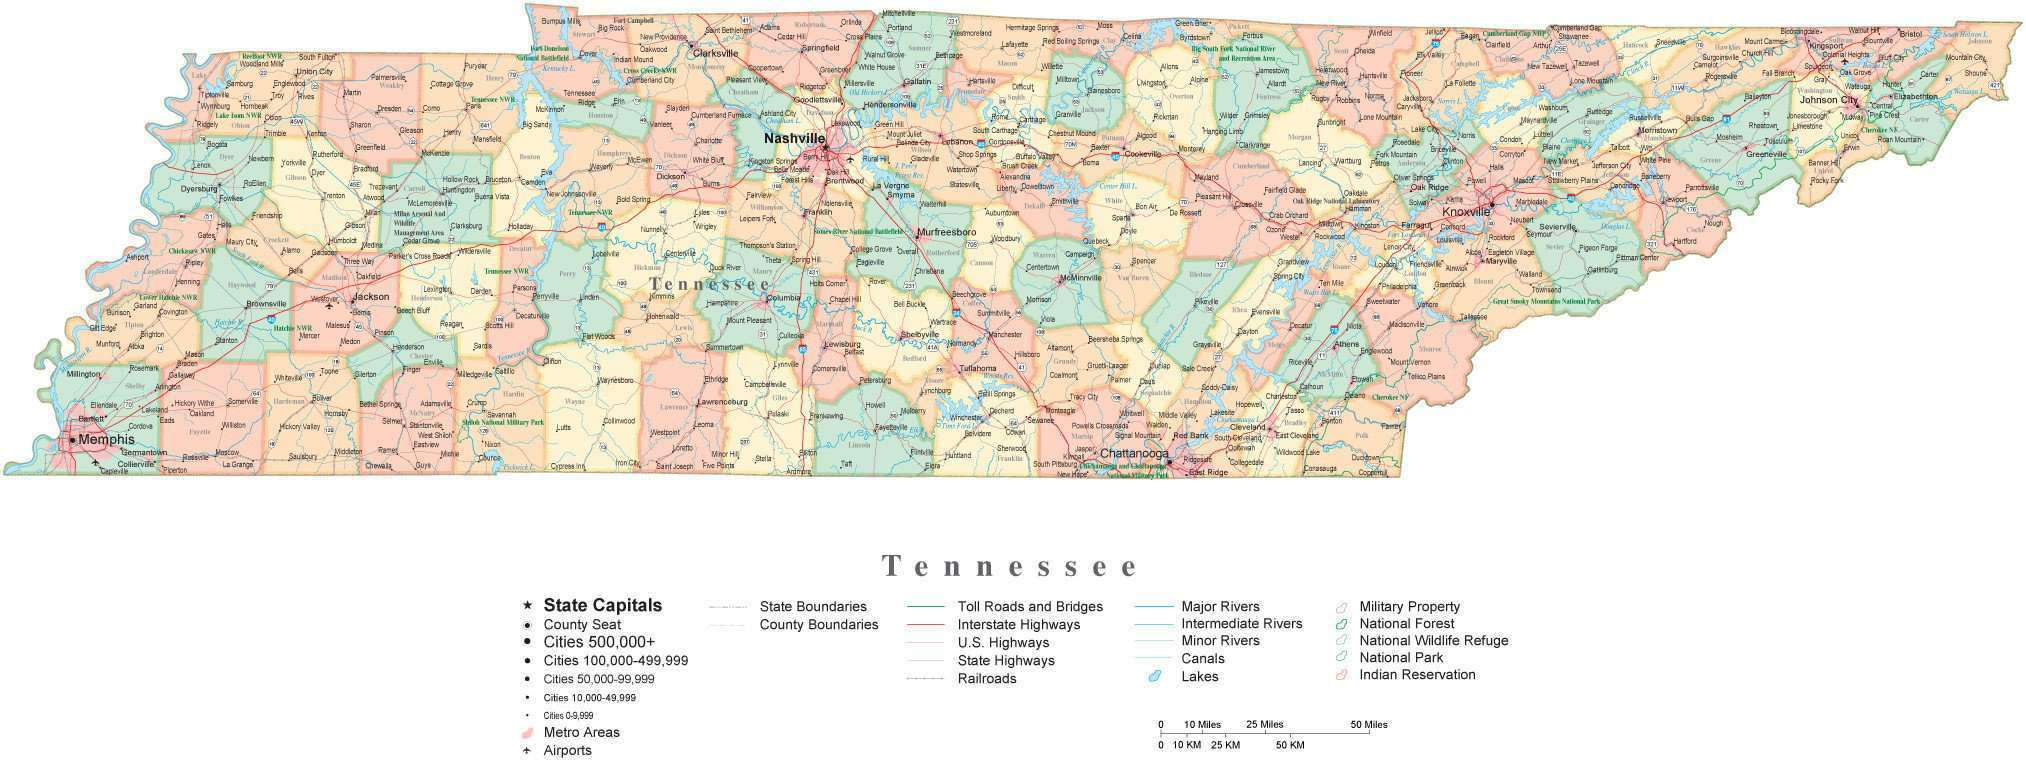 Detailed Tennessee Cut-Out Style Digital Map with Counties, Cities, on usa map chattanooga, usa map south carolina, usa map wisconsin, usa map memphis, usa map california, usa map cleveland, usa map new mexico, usa map nashville, usa map white, usa map florida, usa map michigan, usa map delaware, usa map oklahoma, usa map iowa, usa map alabama, usa map north carolina, usa map pennsylvania, usa map new york city, usa map knoxville, usa map arizona,